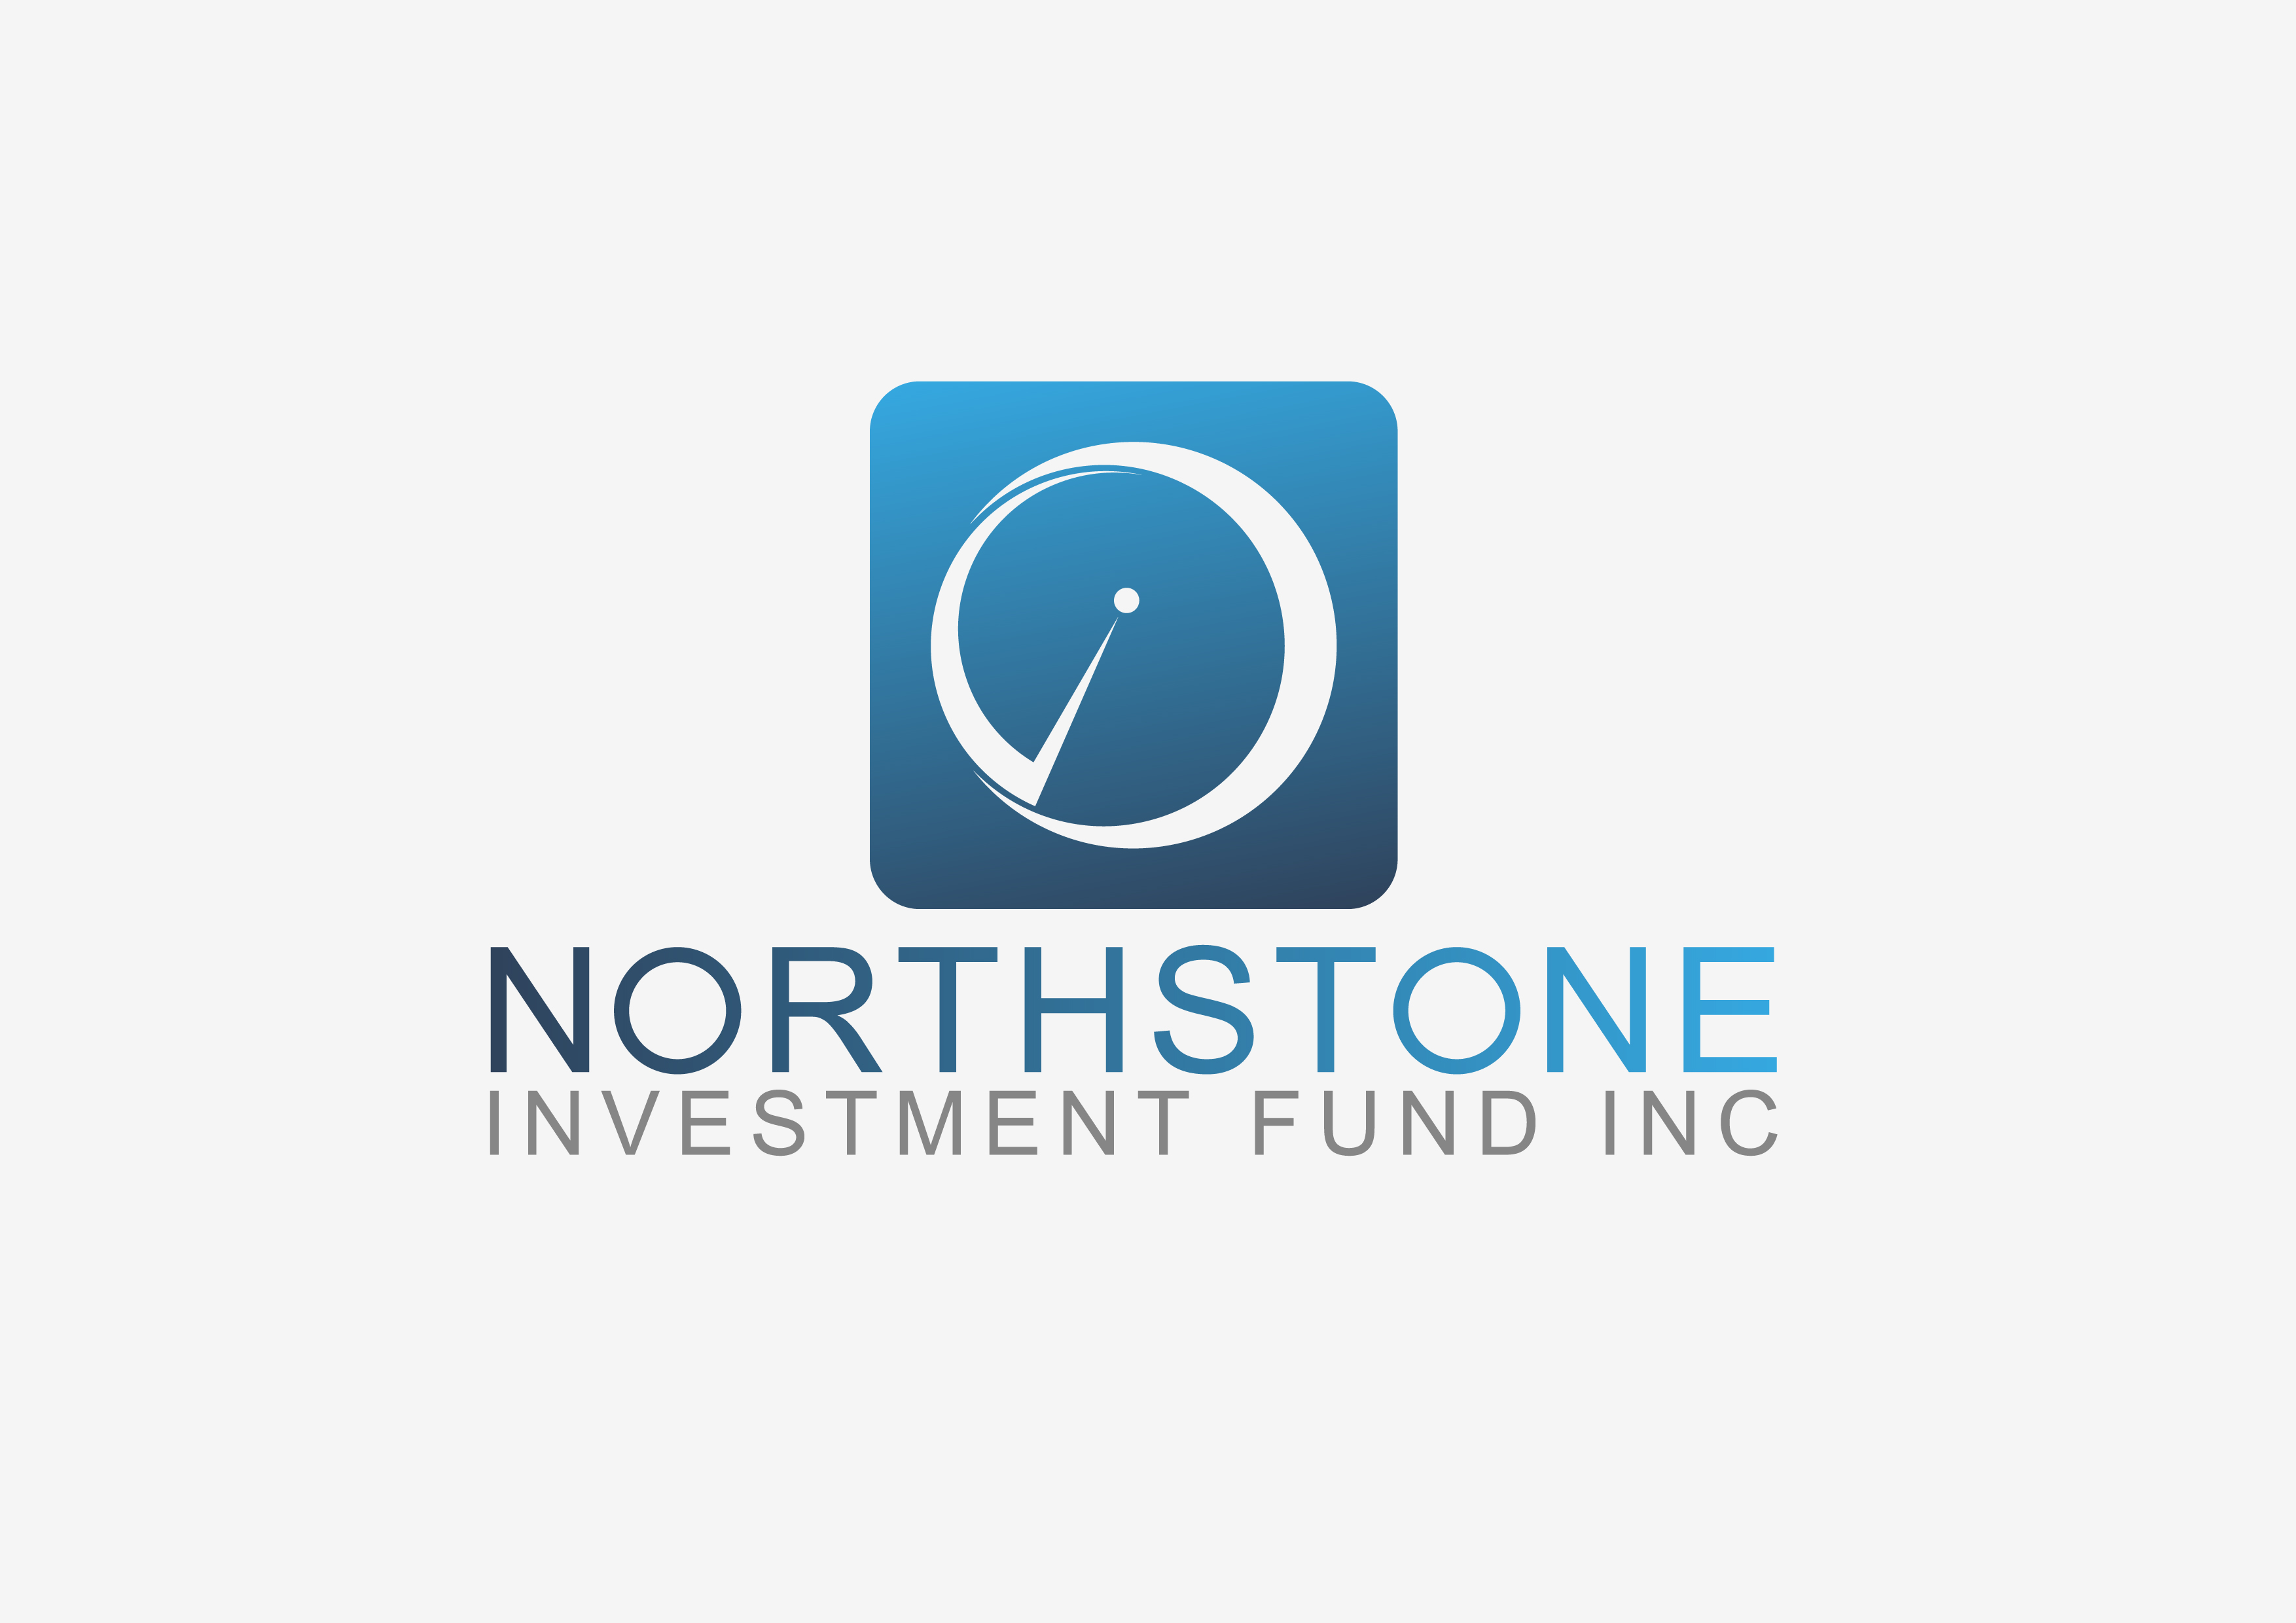 Logo Design by 3draw - Entry No. 225 in the Logo Design Contest Unique Logo Design Wanted for NorthStone Investment Fund Inc.